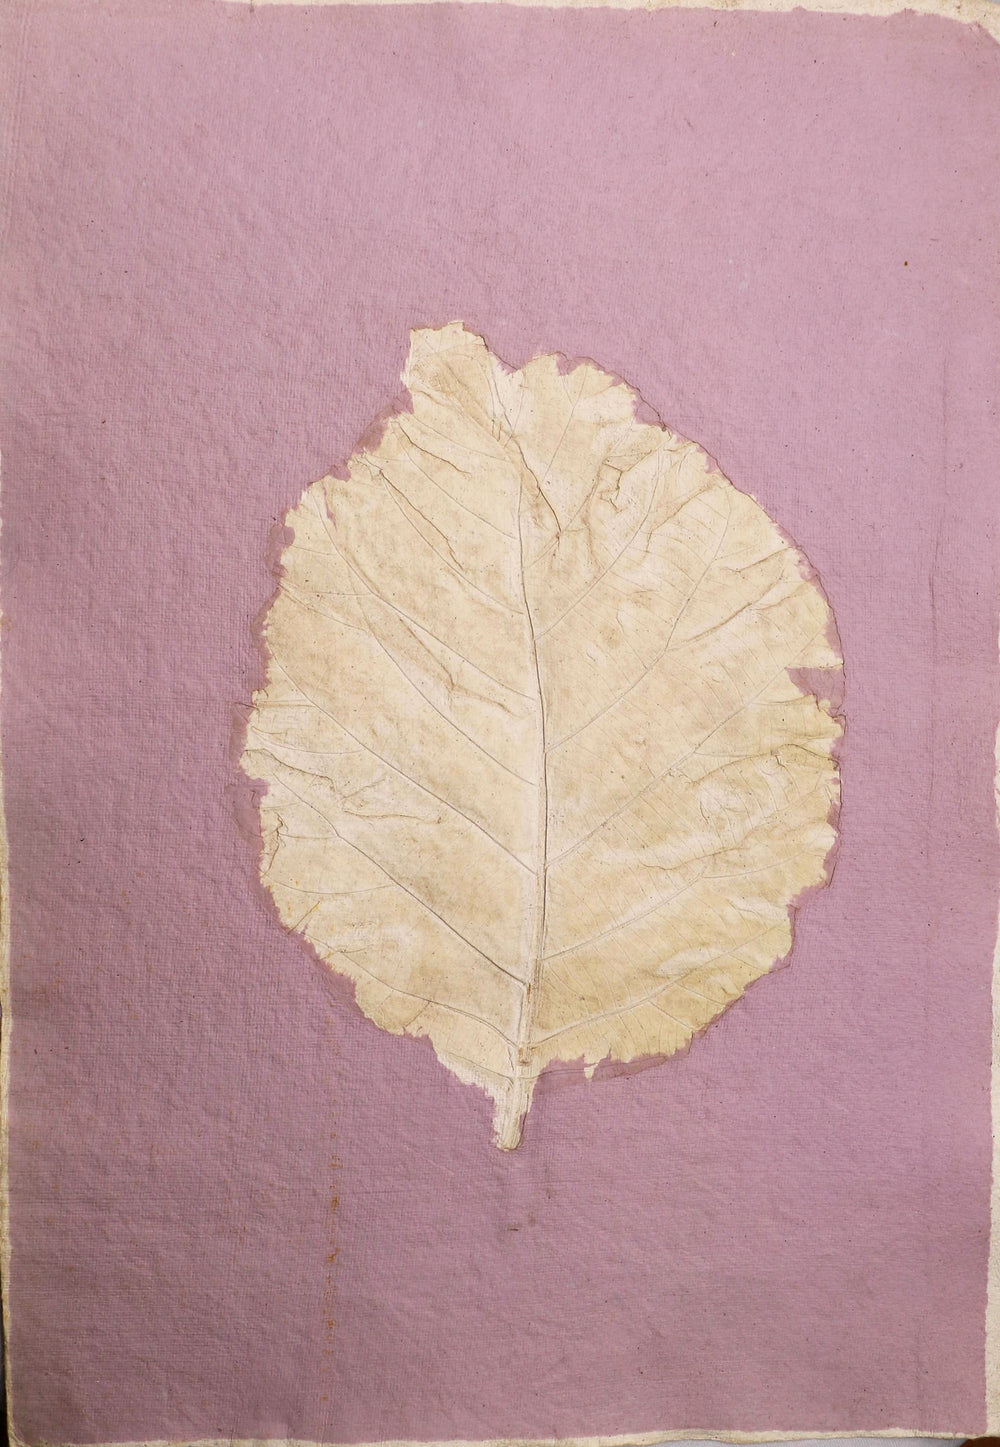 Leaf impression on handmade paper